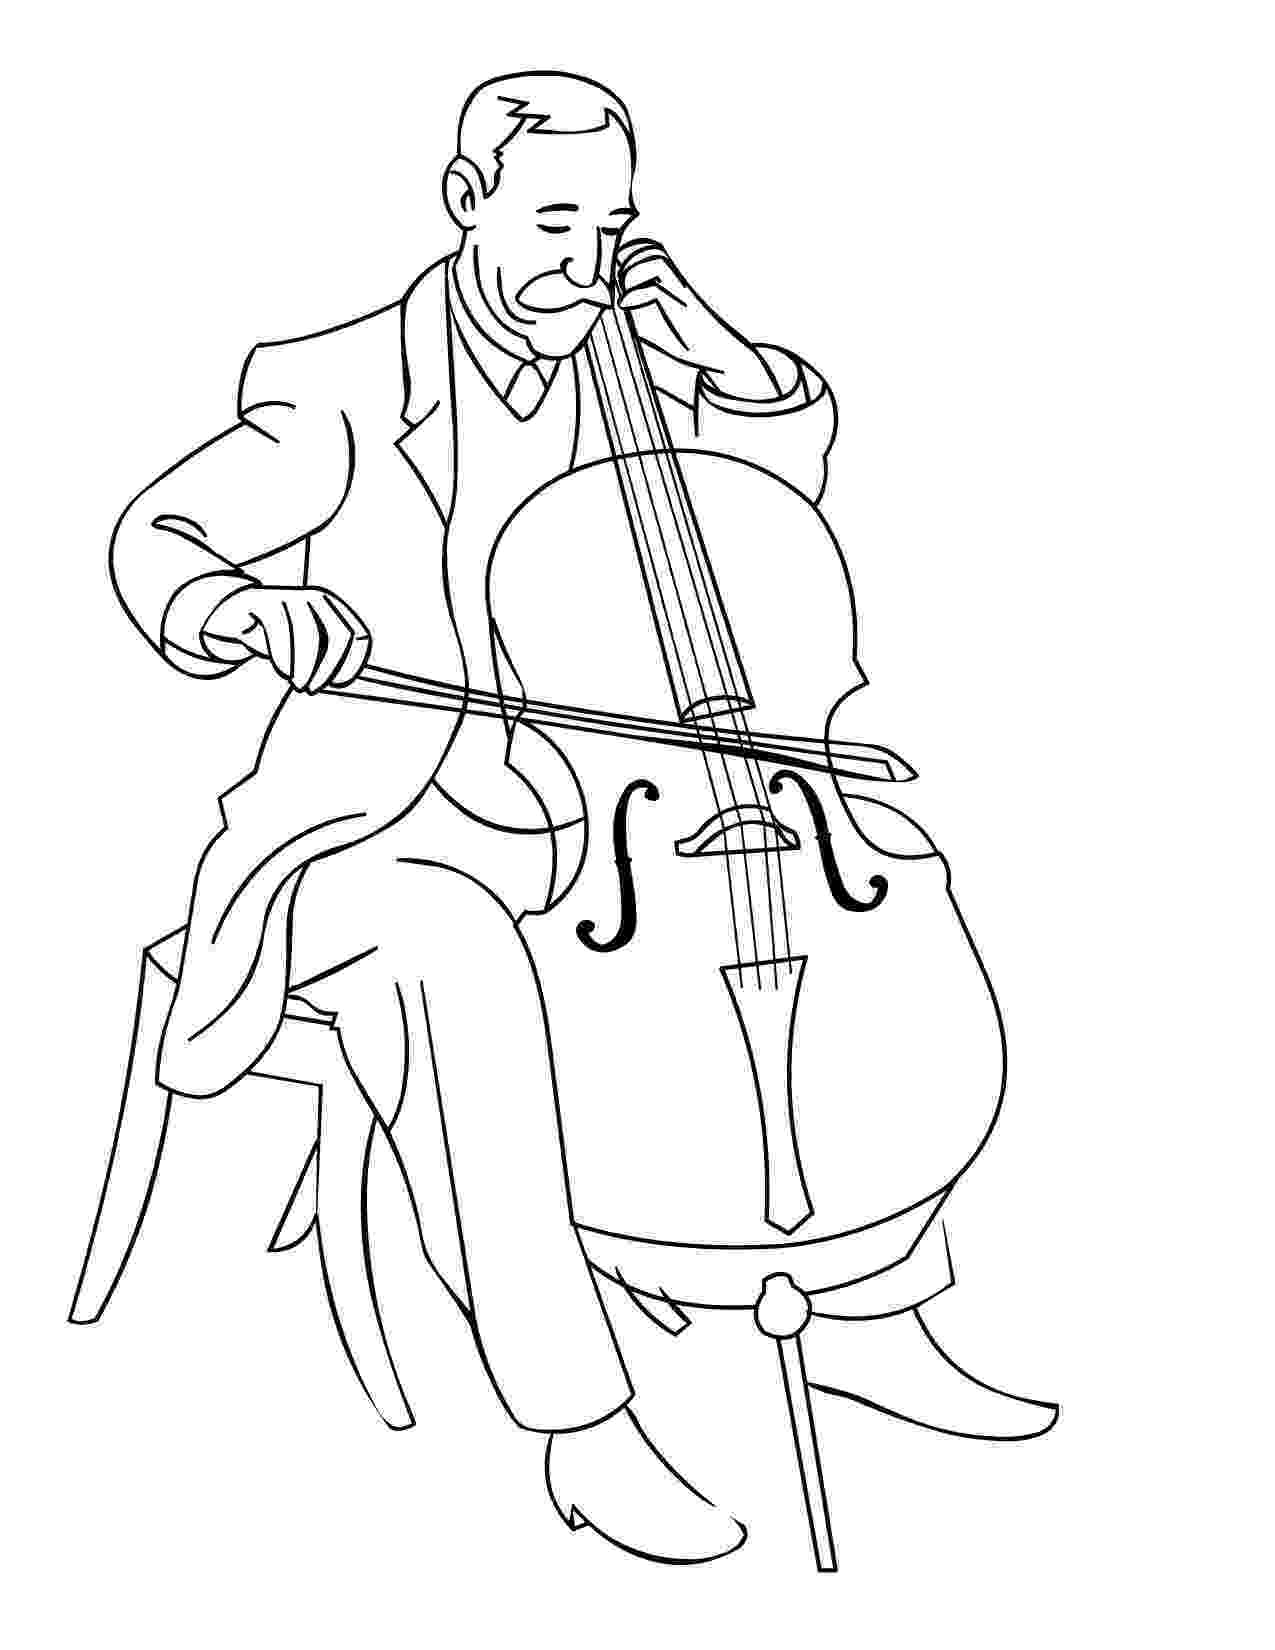 violin pictures to print violin coloring pages coloring pages to download and print print pictures to violin